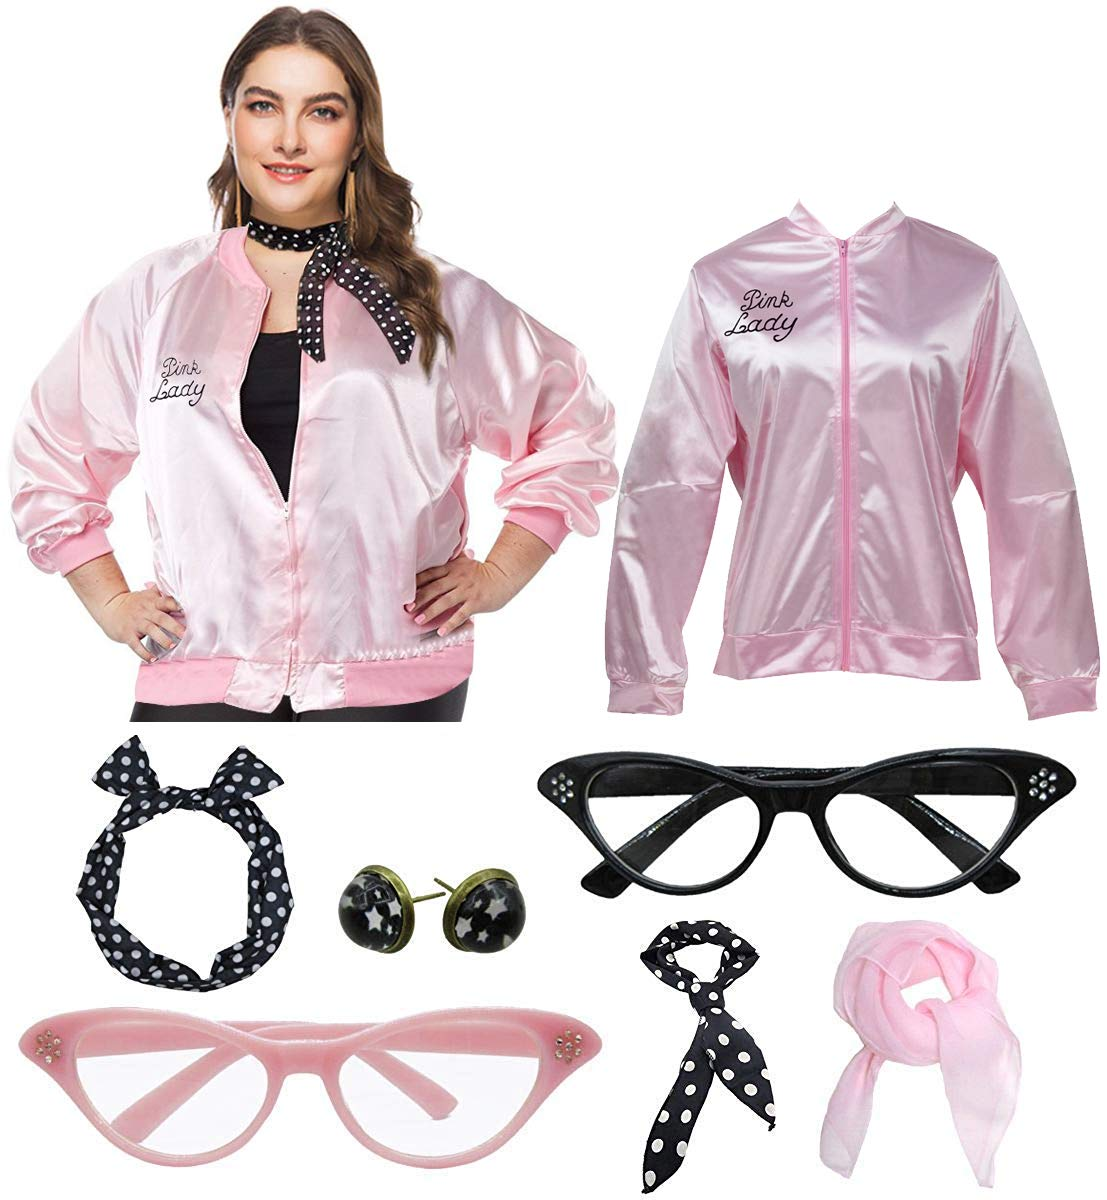 1950s Women Plus Size Pink Ladies Jacket with Cat Eye Glasses Headband Set (Pink, XXL) by Dancing Stone